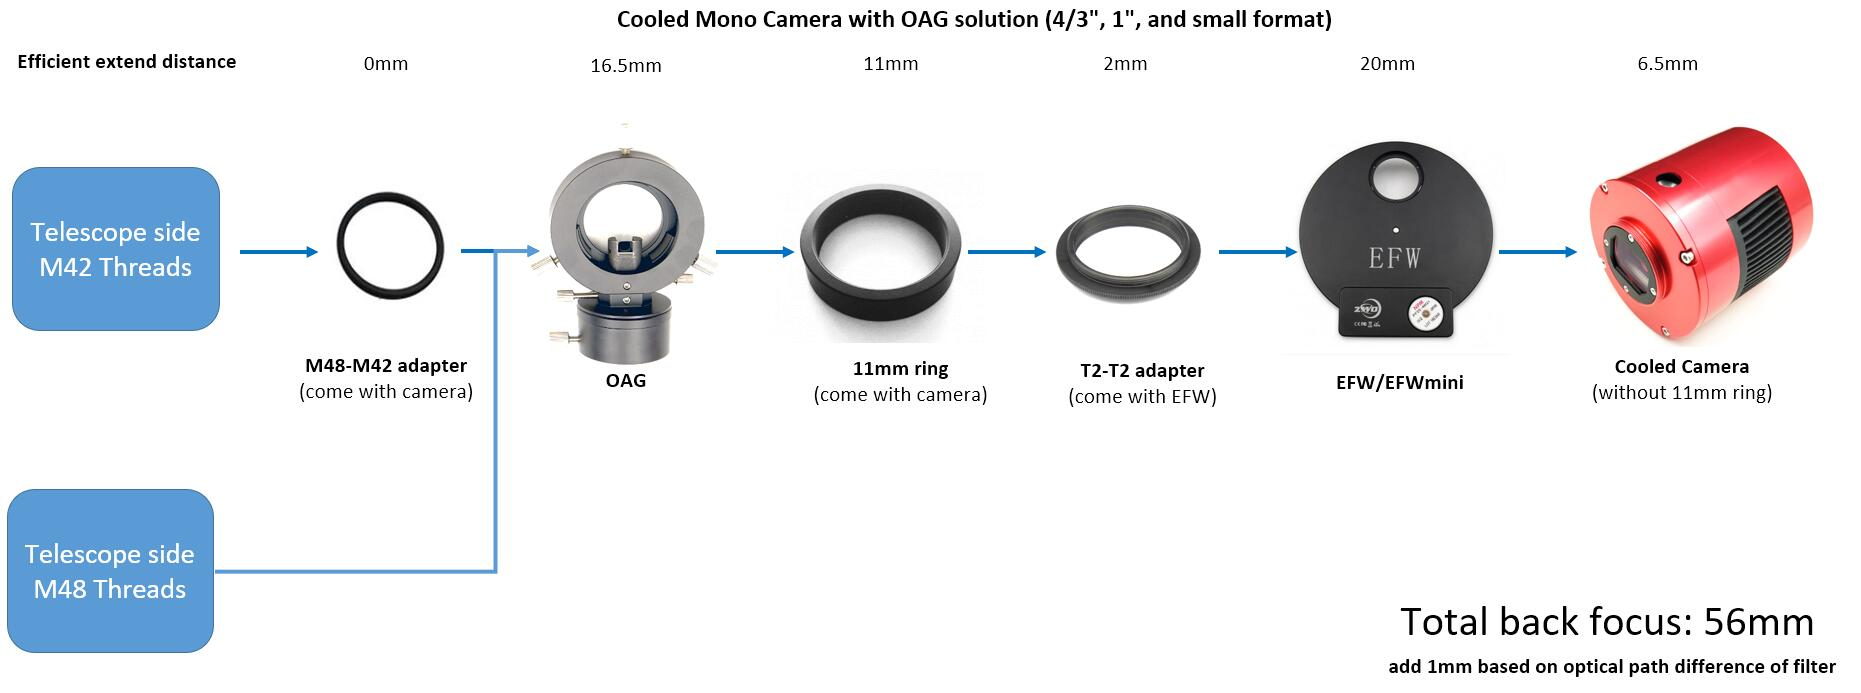 Cooled Mono Camera with OAG solution